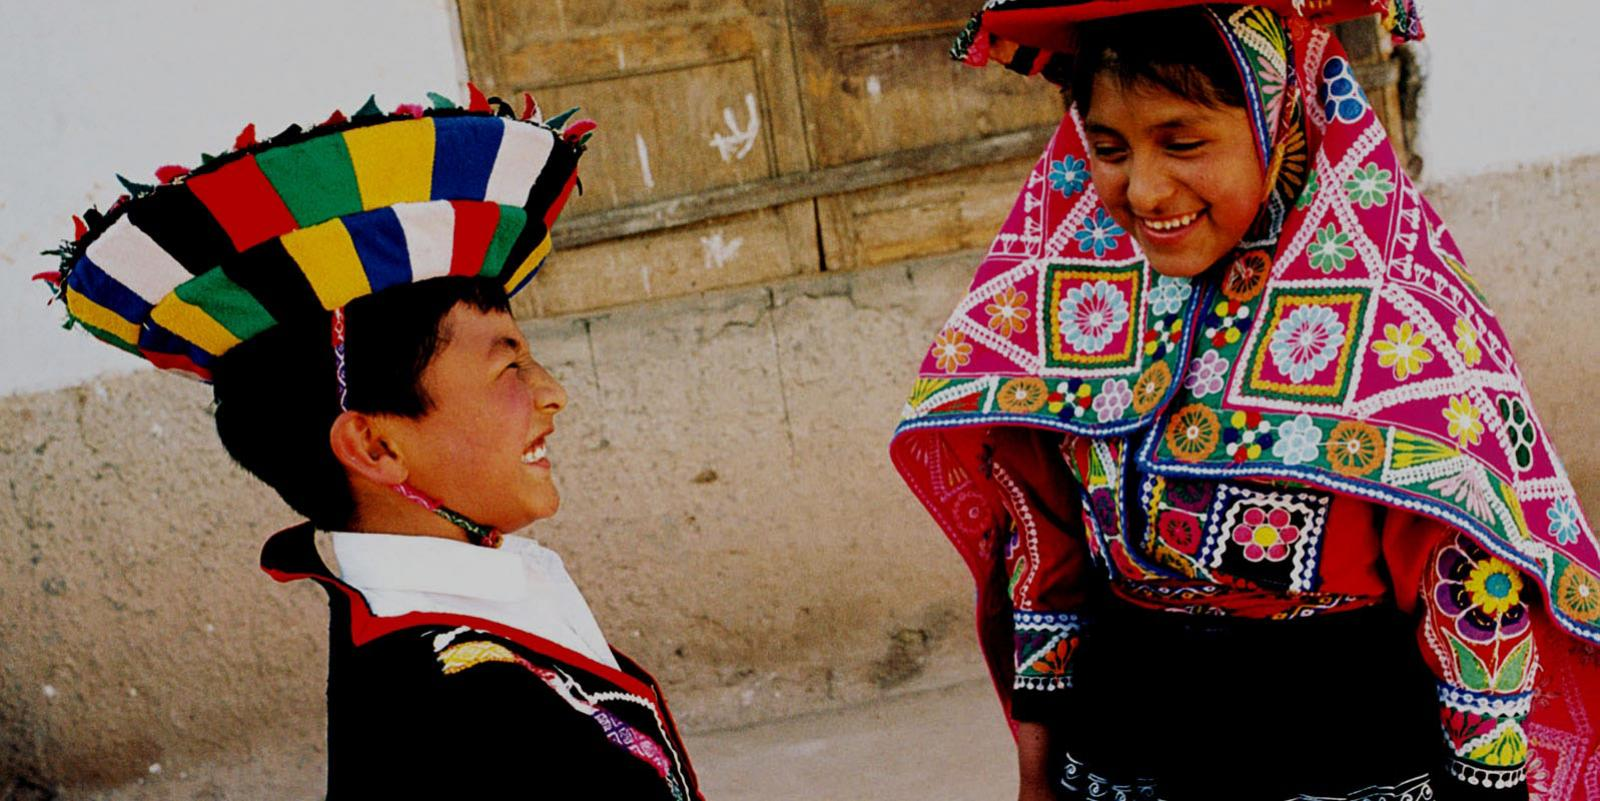 Children from Bolivia laughing